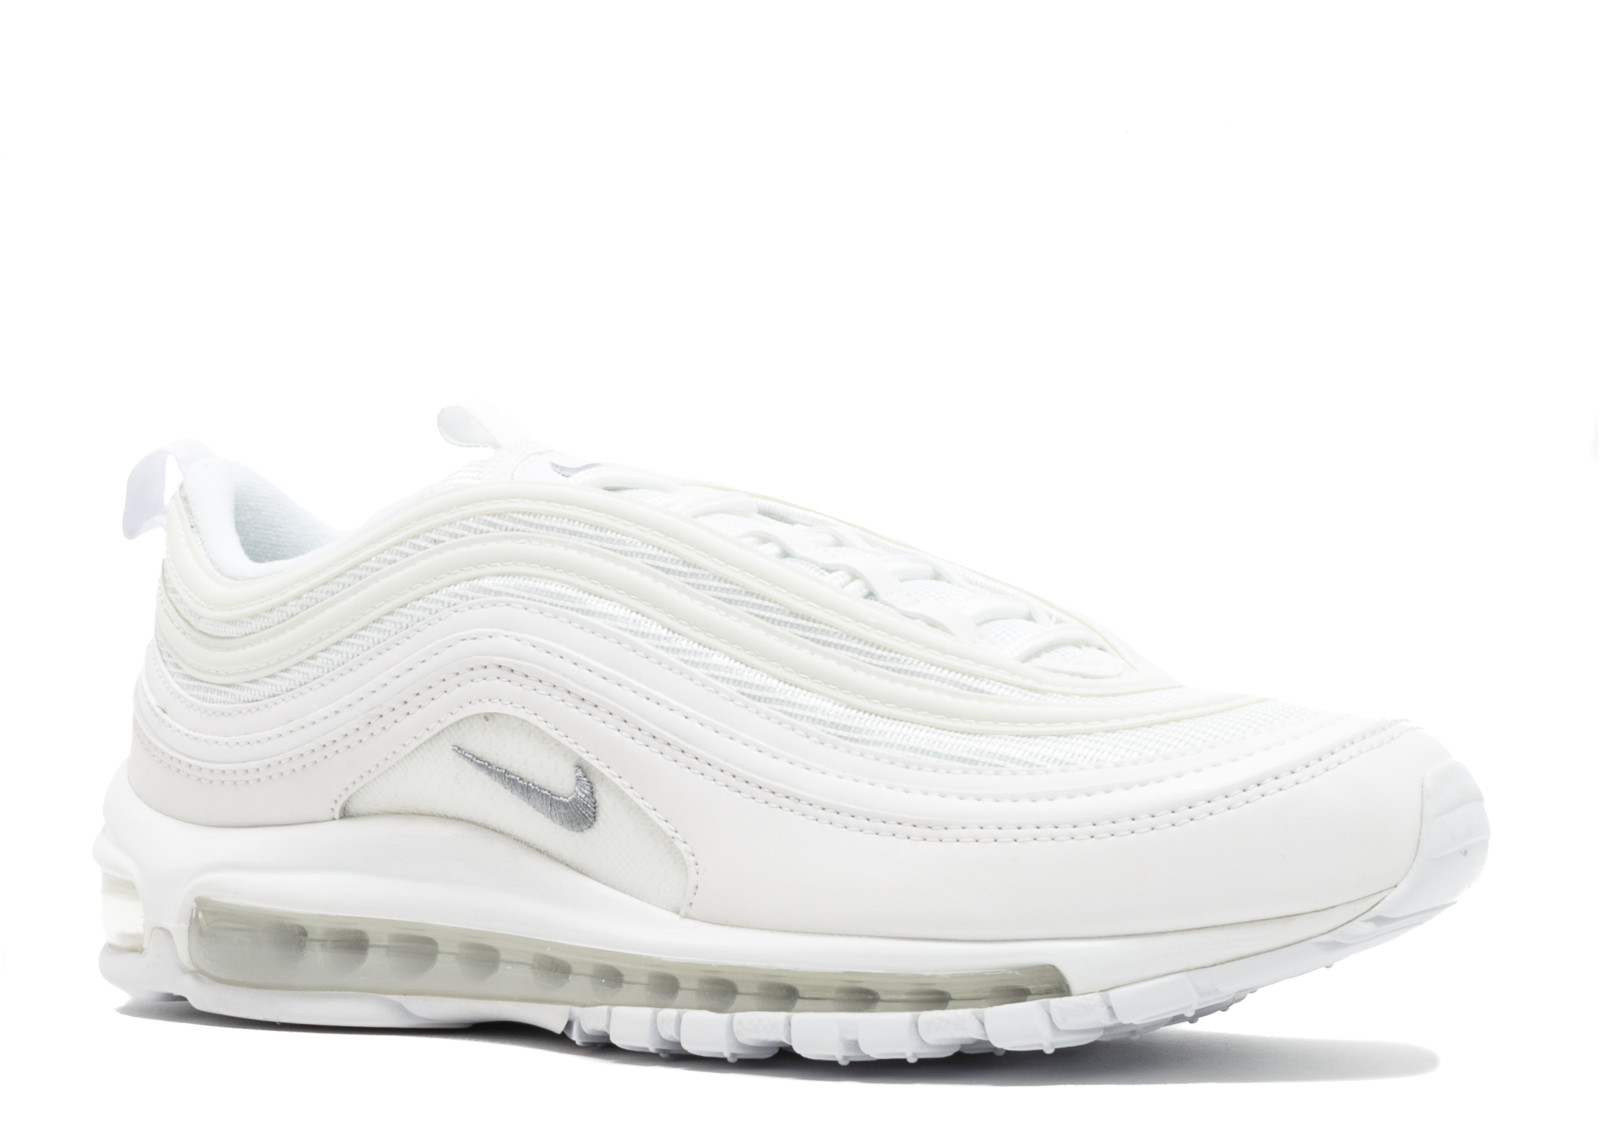 Trainer Shoes Clothes Shoes Accessories Nike Air Max 97 Triple